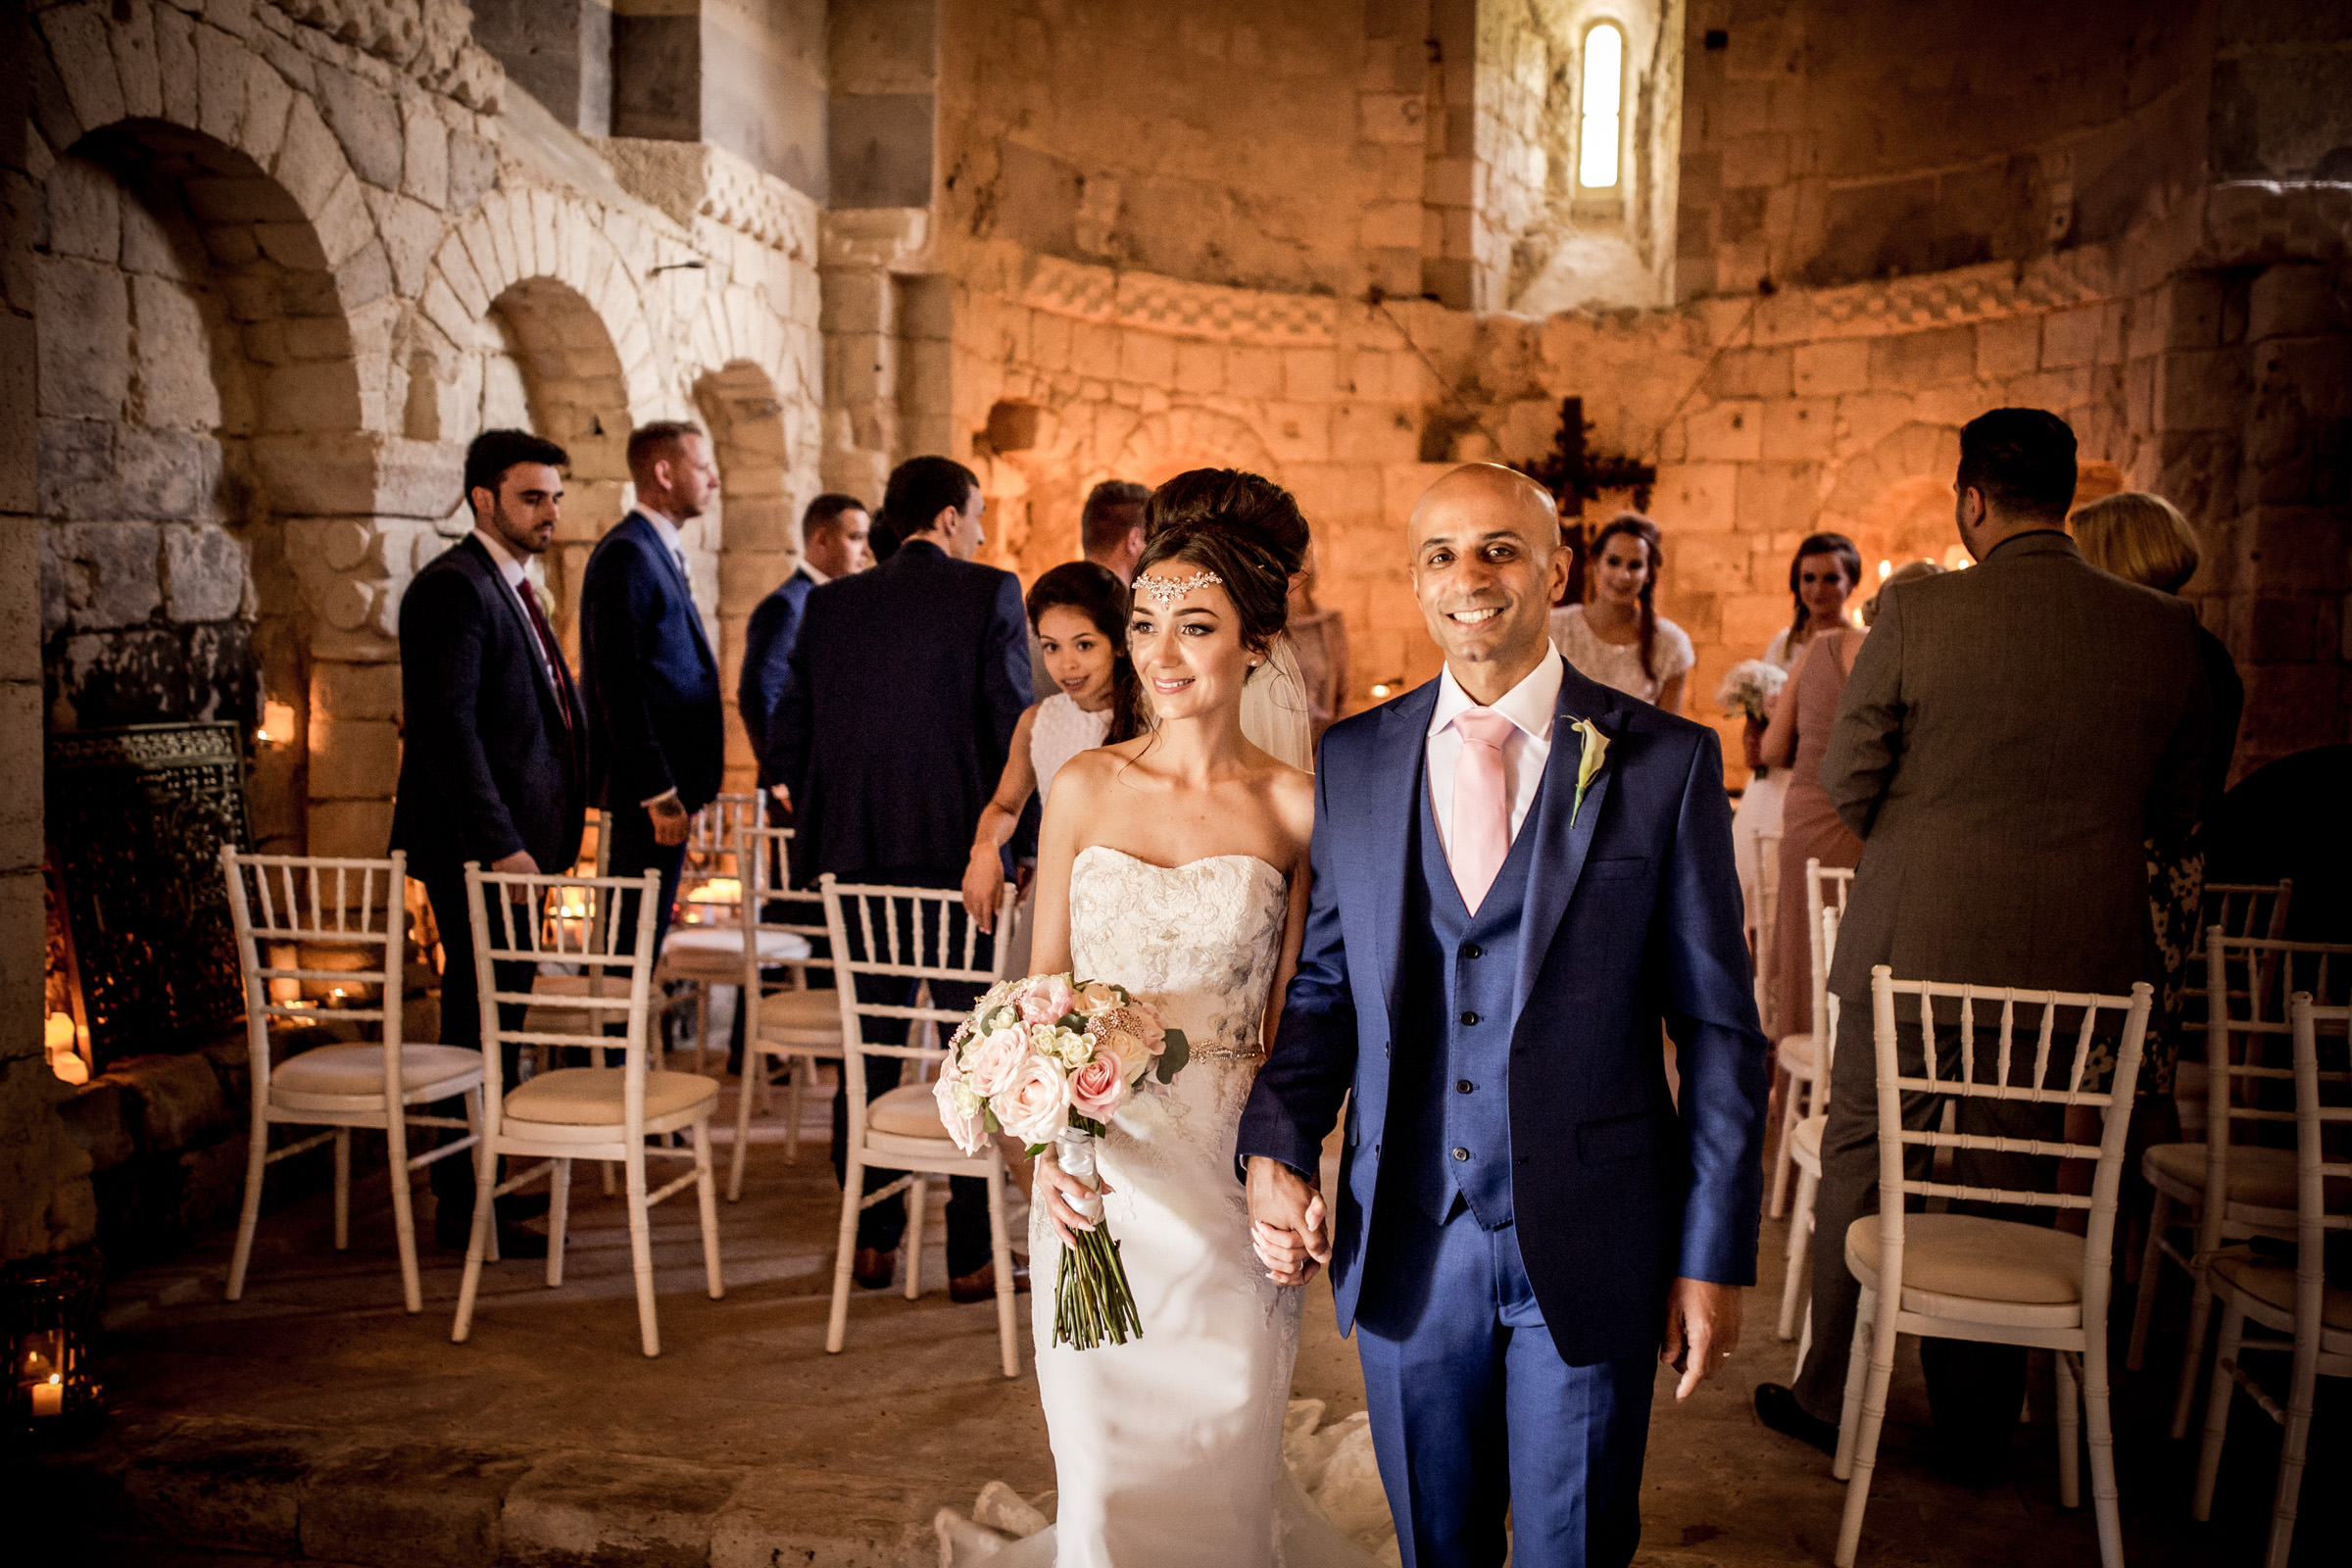 Uk Wedding photographers working at chateau de lisse in gascony 038.jpg